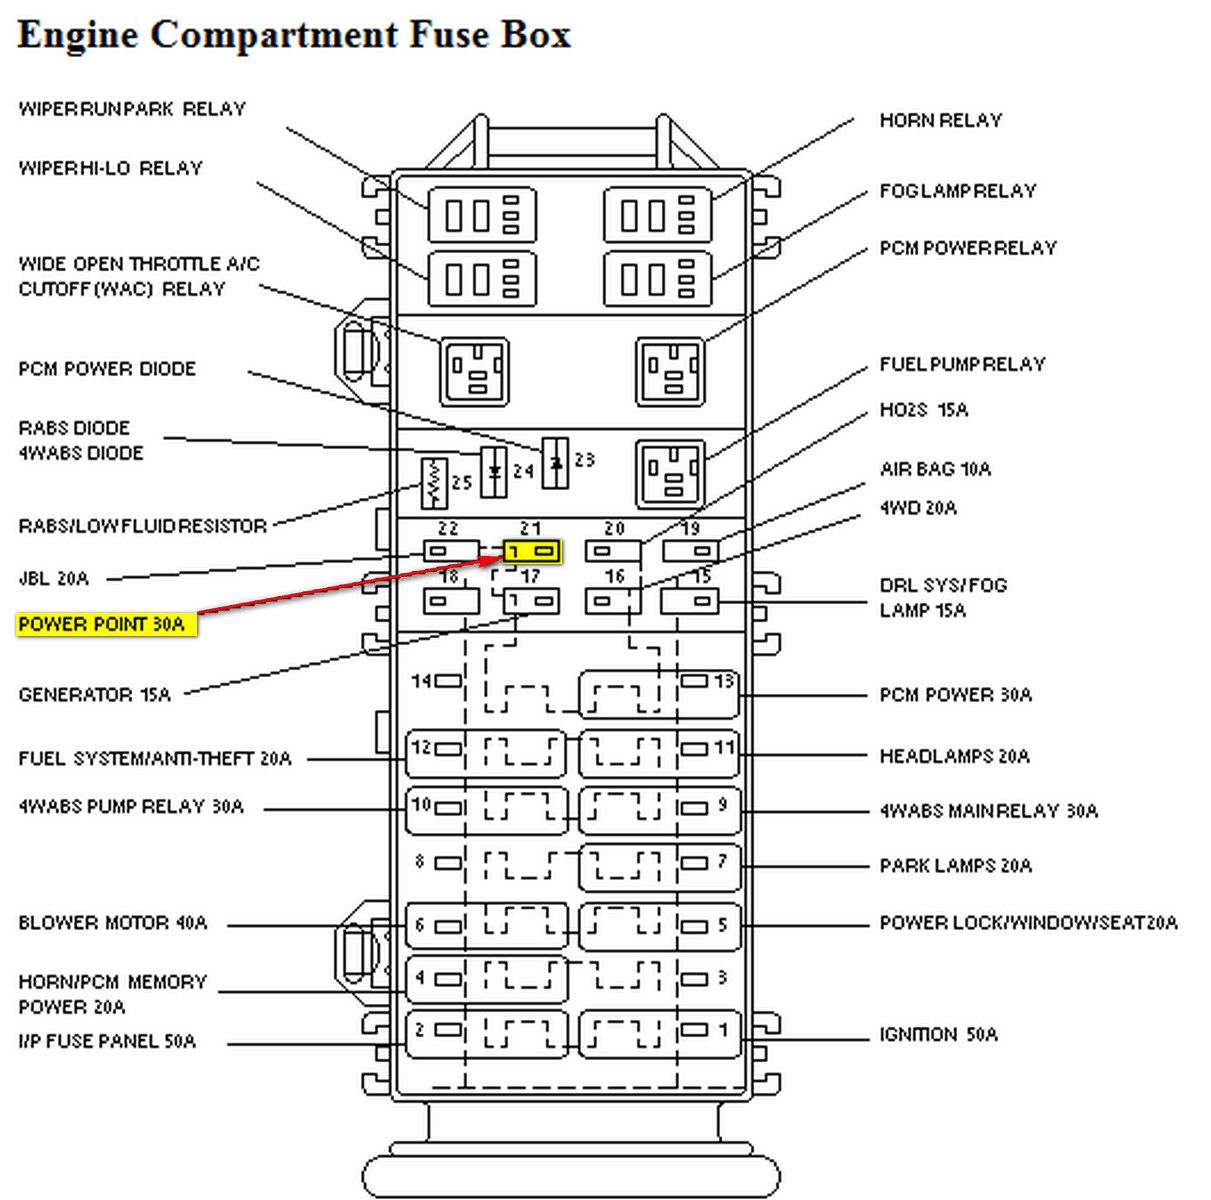 hight resolution of 97 ford fuse box wiring diagram expert97 f150 fuse box layout wiring diagram centre 1997 ford